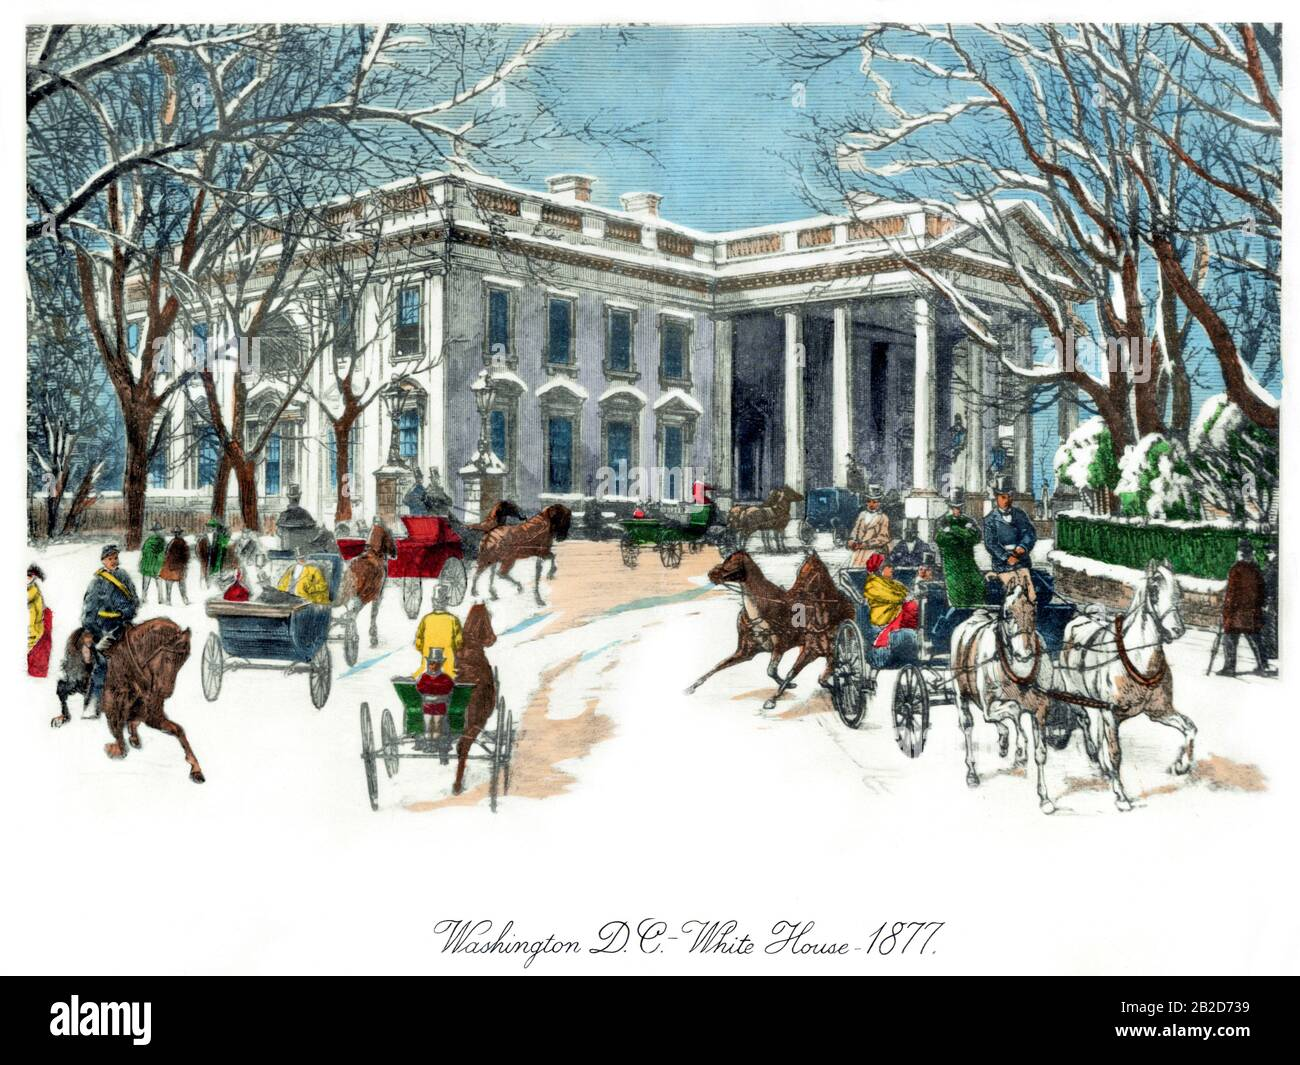 SHOVELING SNOW FROM SIDEWALK WINTER SKETCHES OF 1877